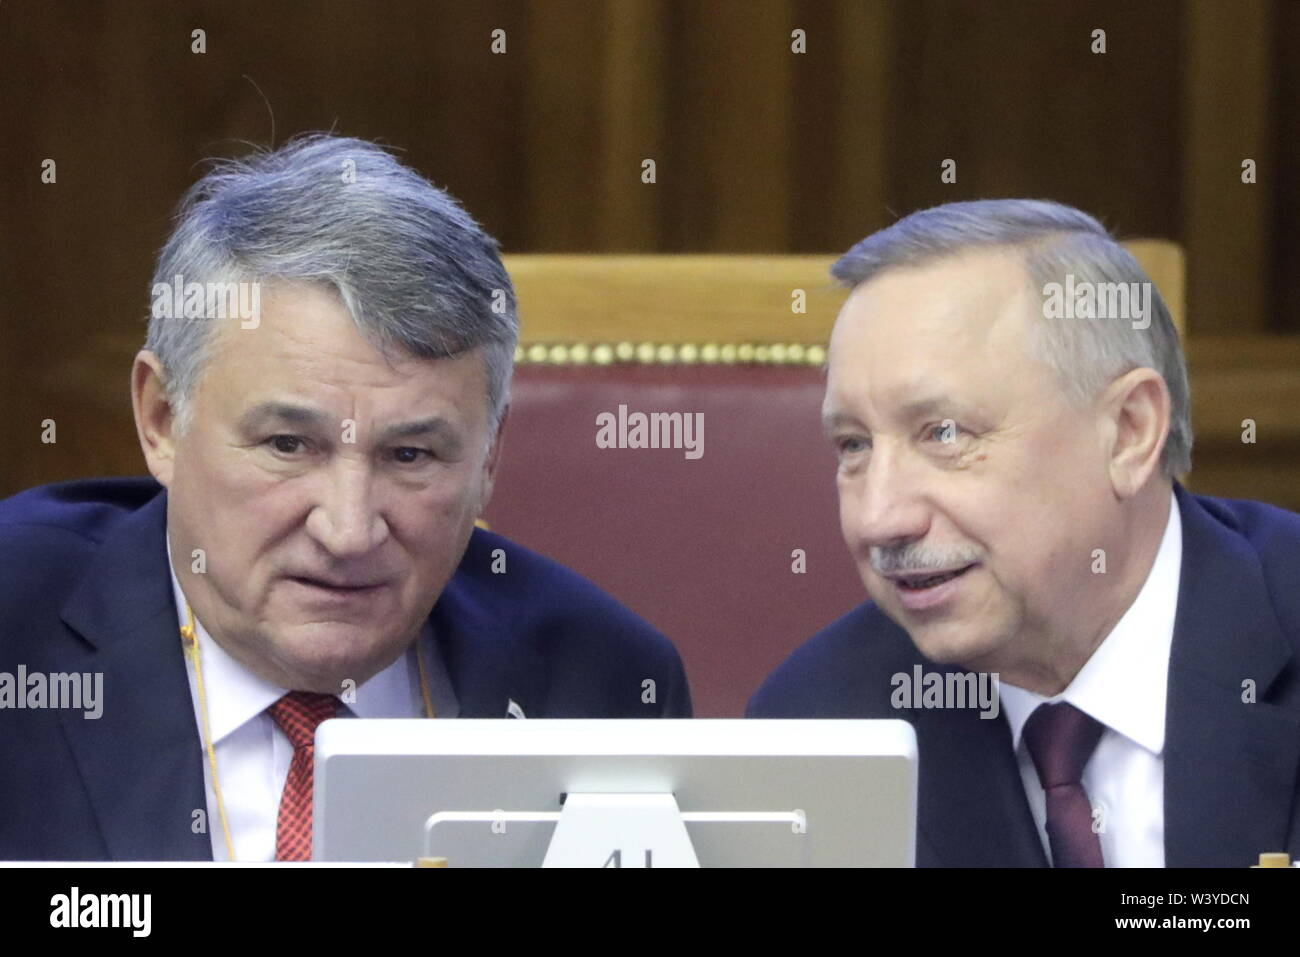 St Petersburg, Russia. 18th July, 2019. ST PETERSBURG, RUSSIA - JULY 18, 2019: Yuri Vorobyov (L), Deputy Chairman of the Russian Federation Council, and acting St Petersburg Governor Alexander Beglov attend a plenary meeting at the 5th Belarus-Russia Forum of Regions, Tauride Palace. Mikhail Metzel/TASS Credit: ITAR-TASS News Agency/Alamy Live News - Stock Image